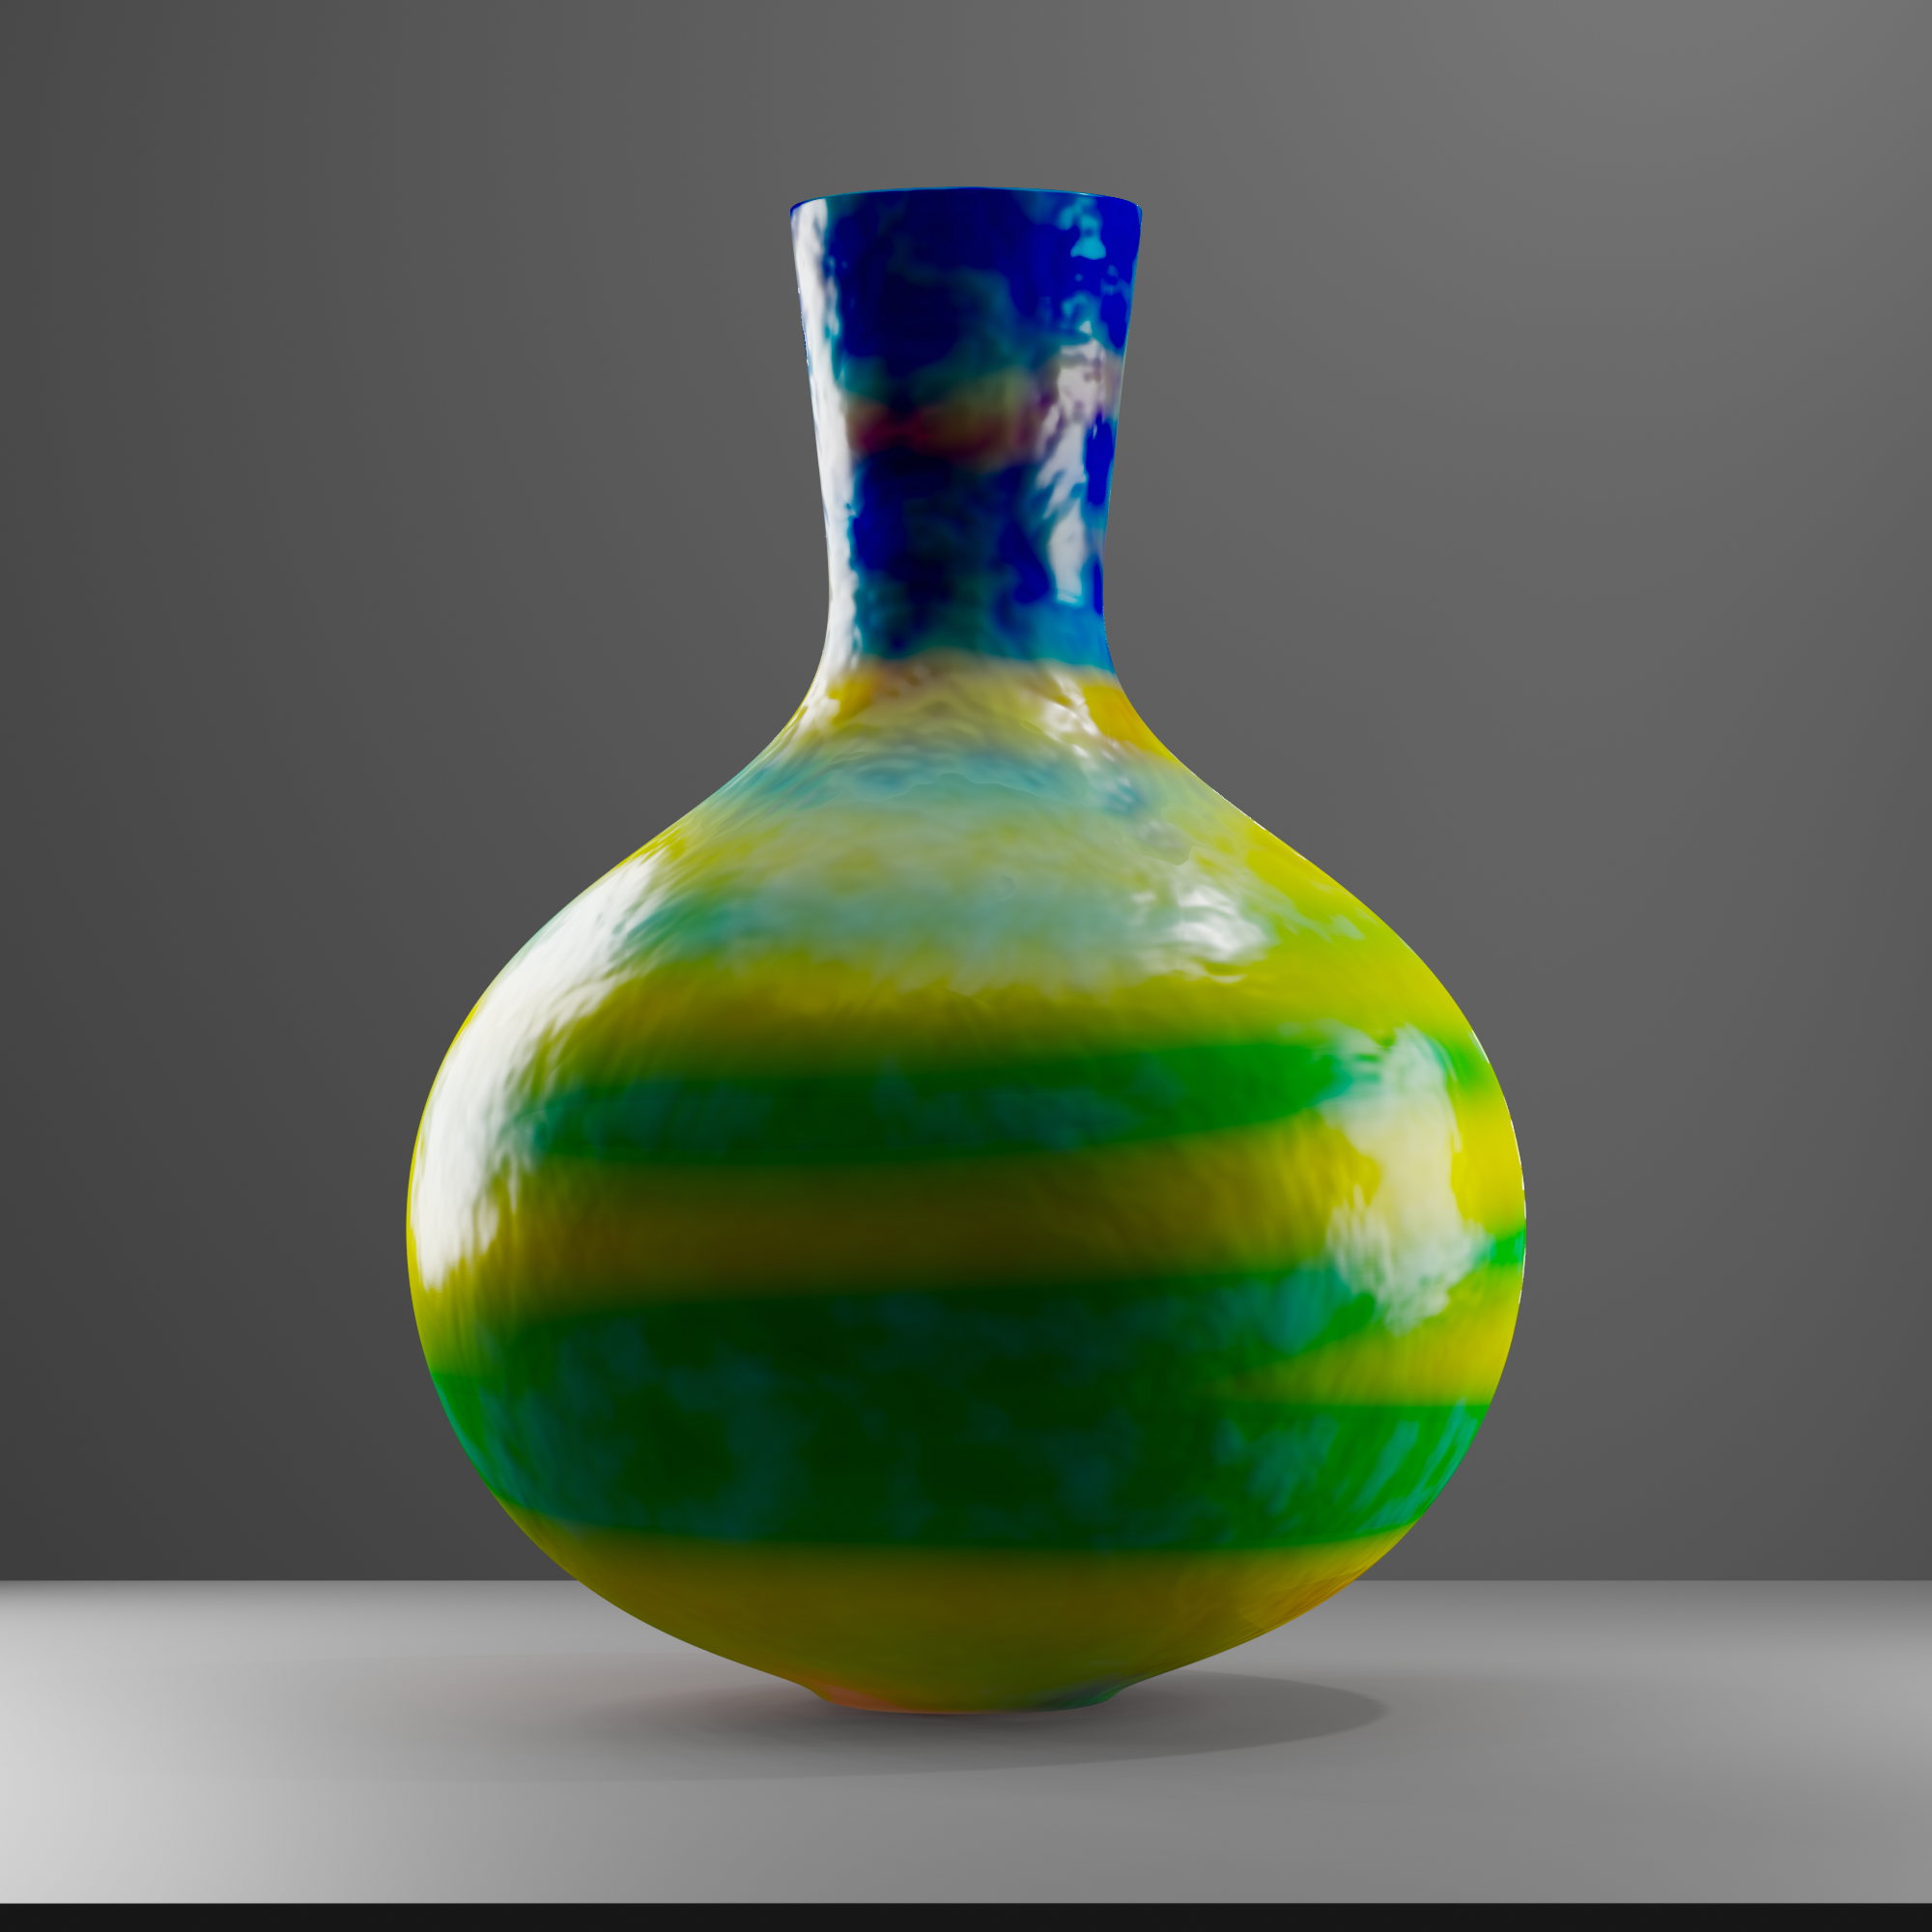 Pack of vases preview image 2